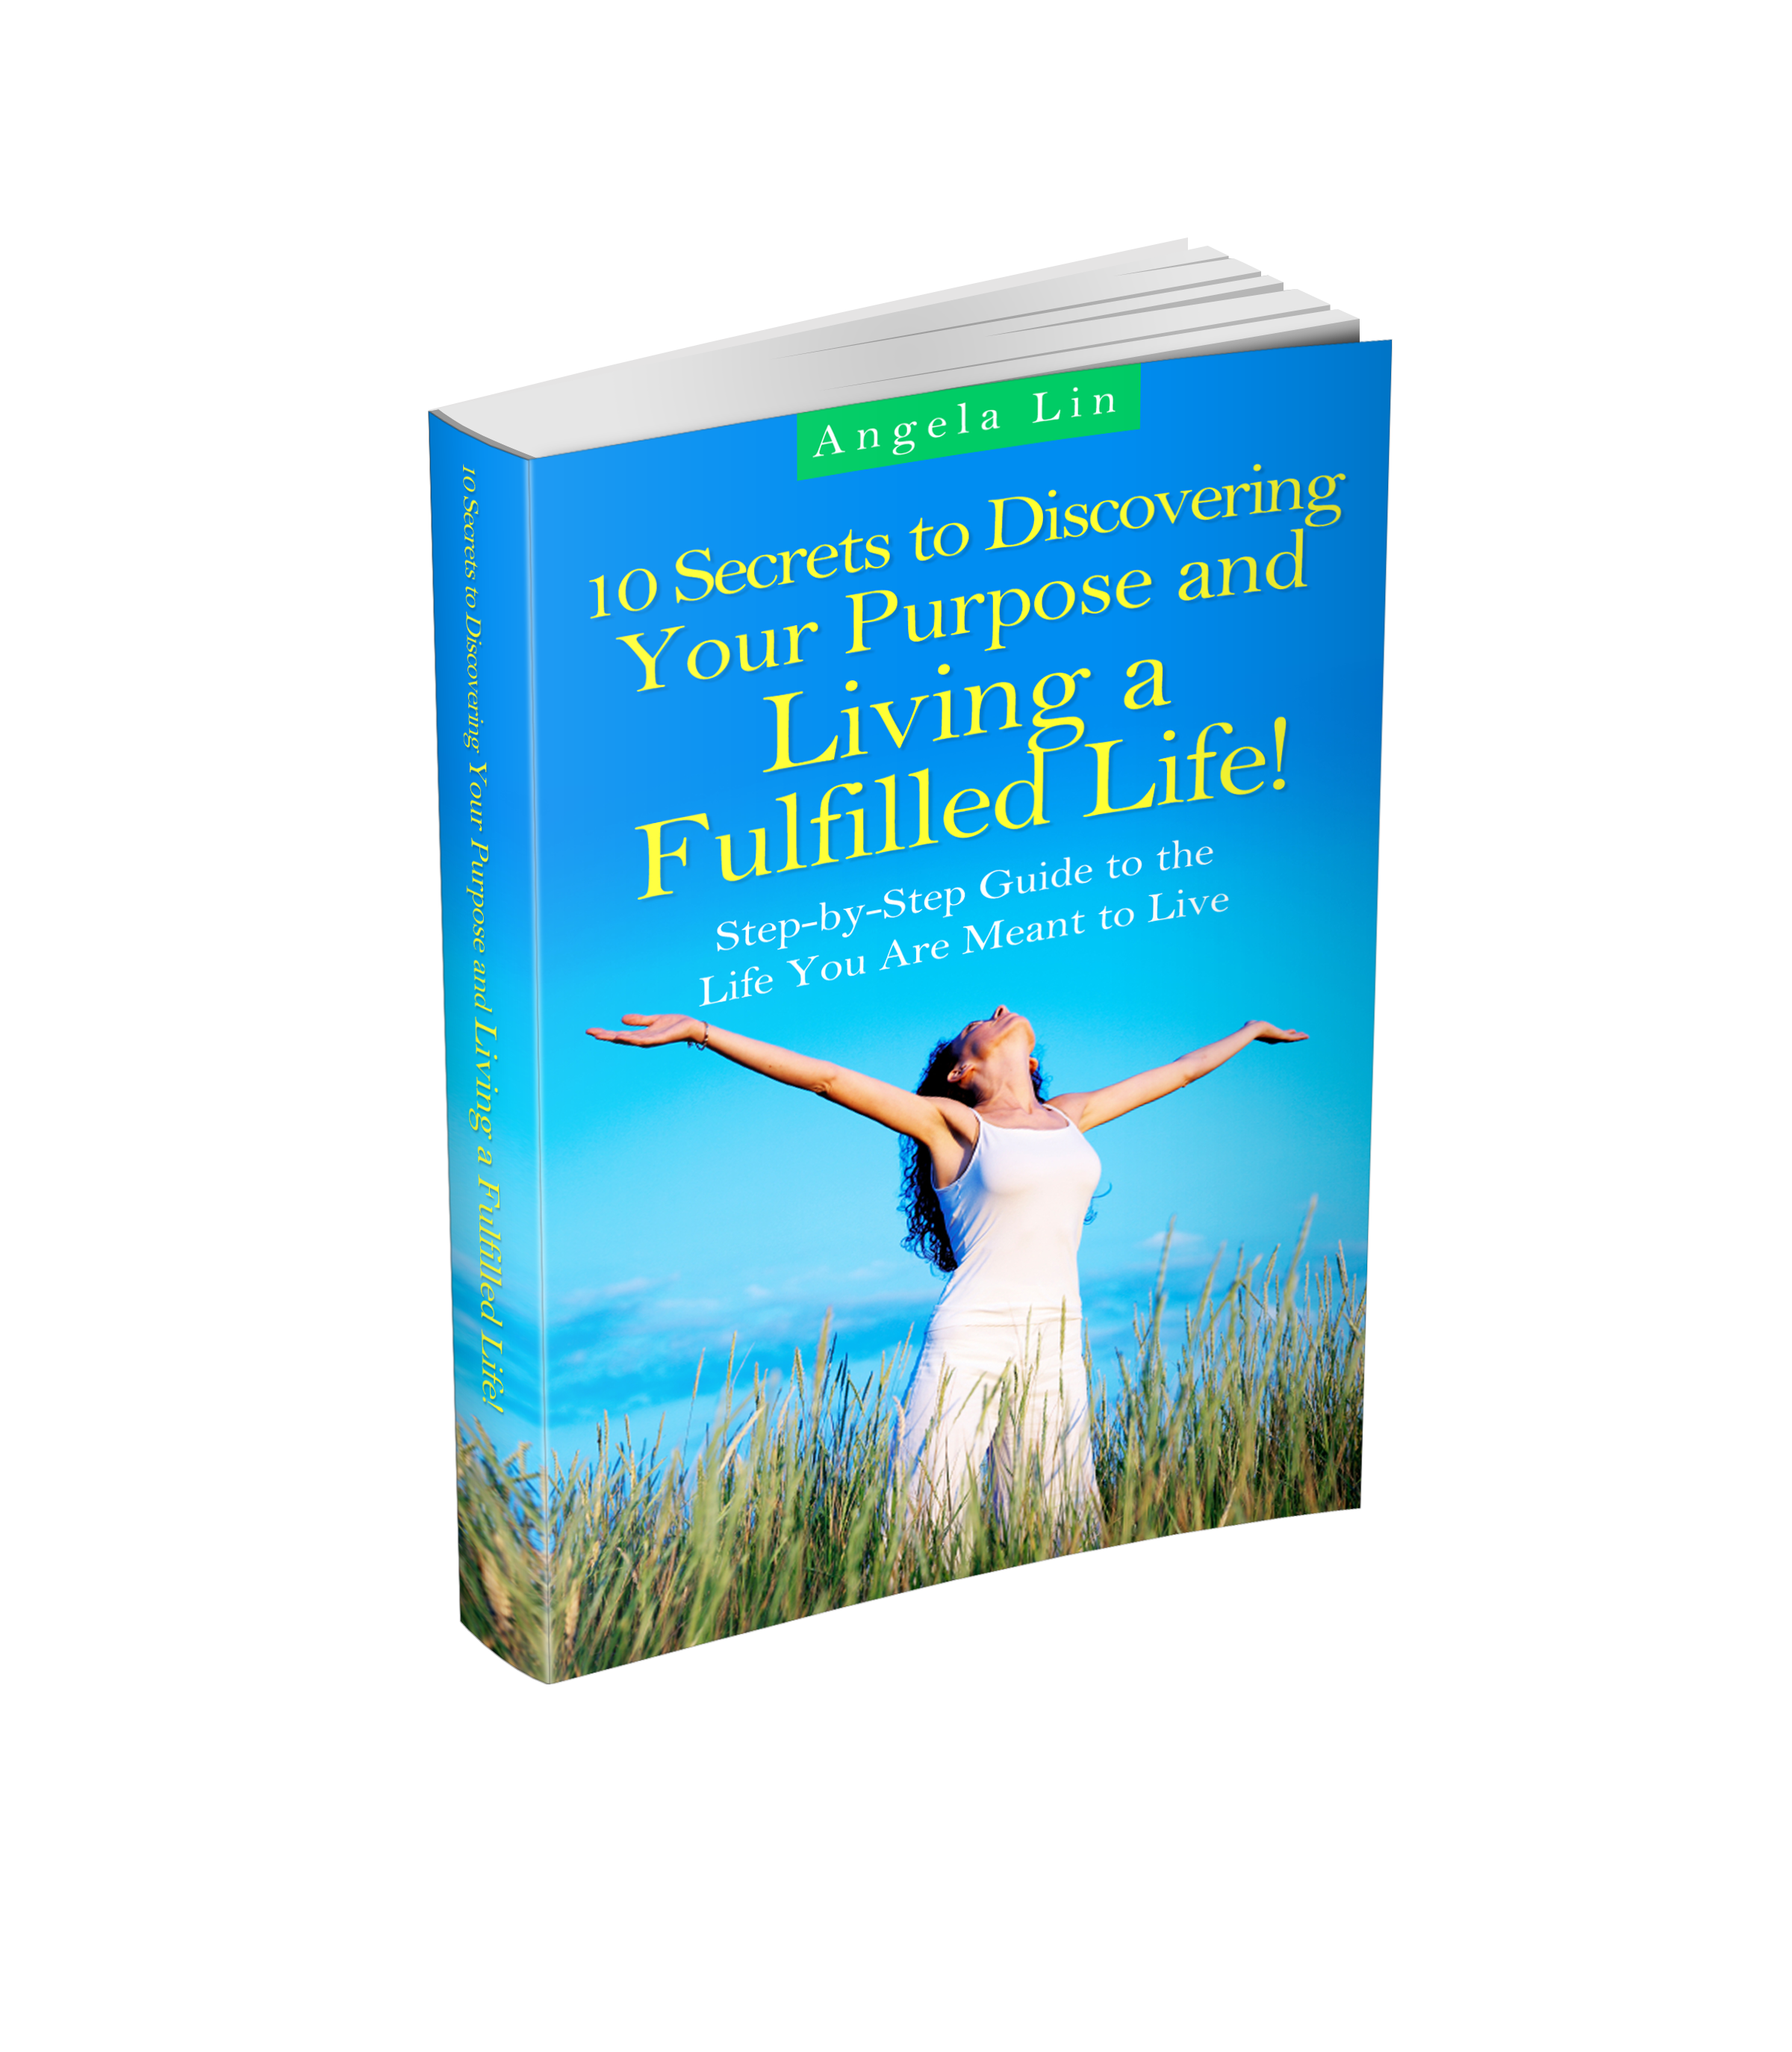 10 Secrets to Discovering Your Purpose and Living a Fulfilled Life